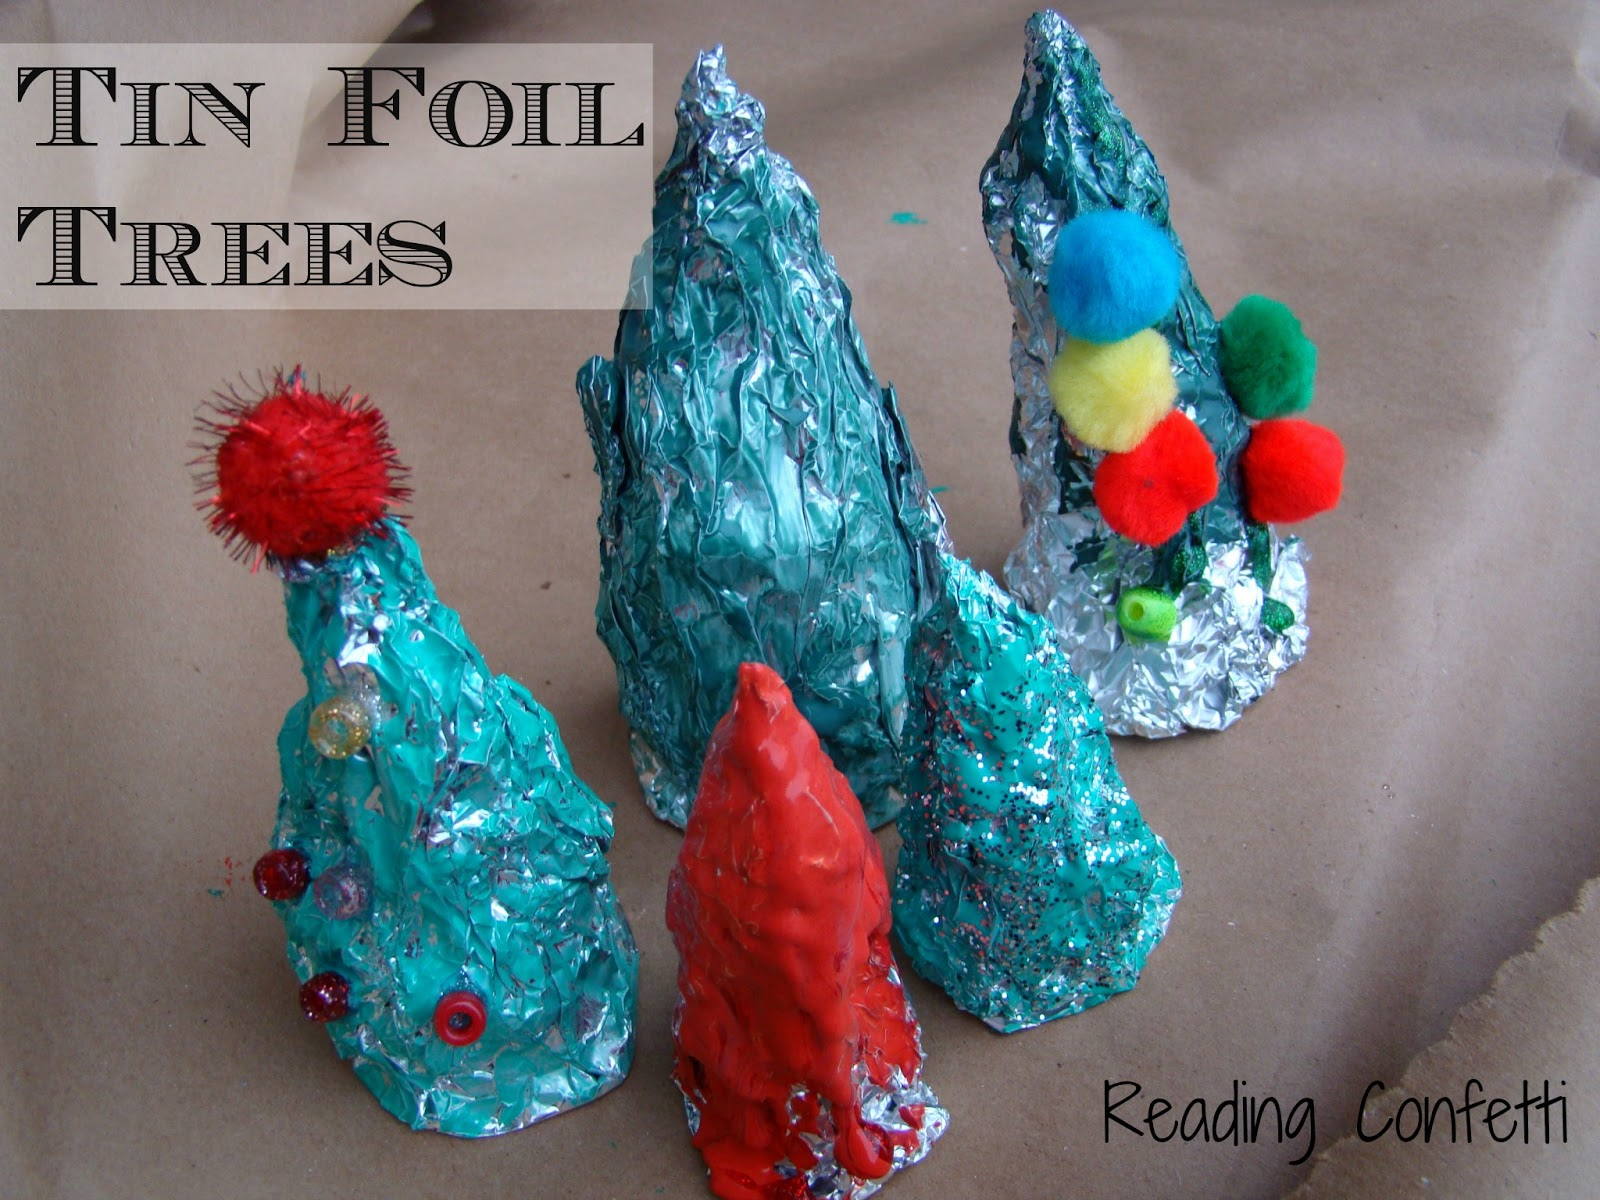 Tin Foil Christmas Tree Sculptures ~ Reading Confetti